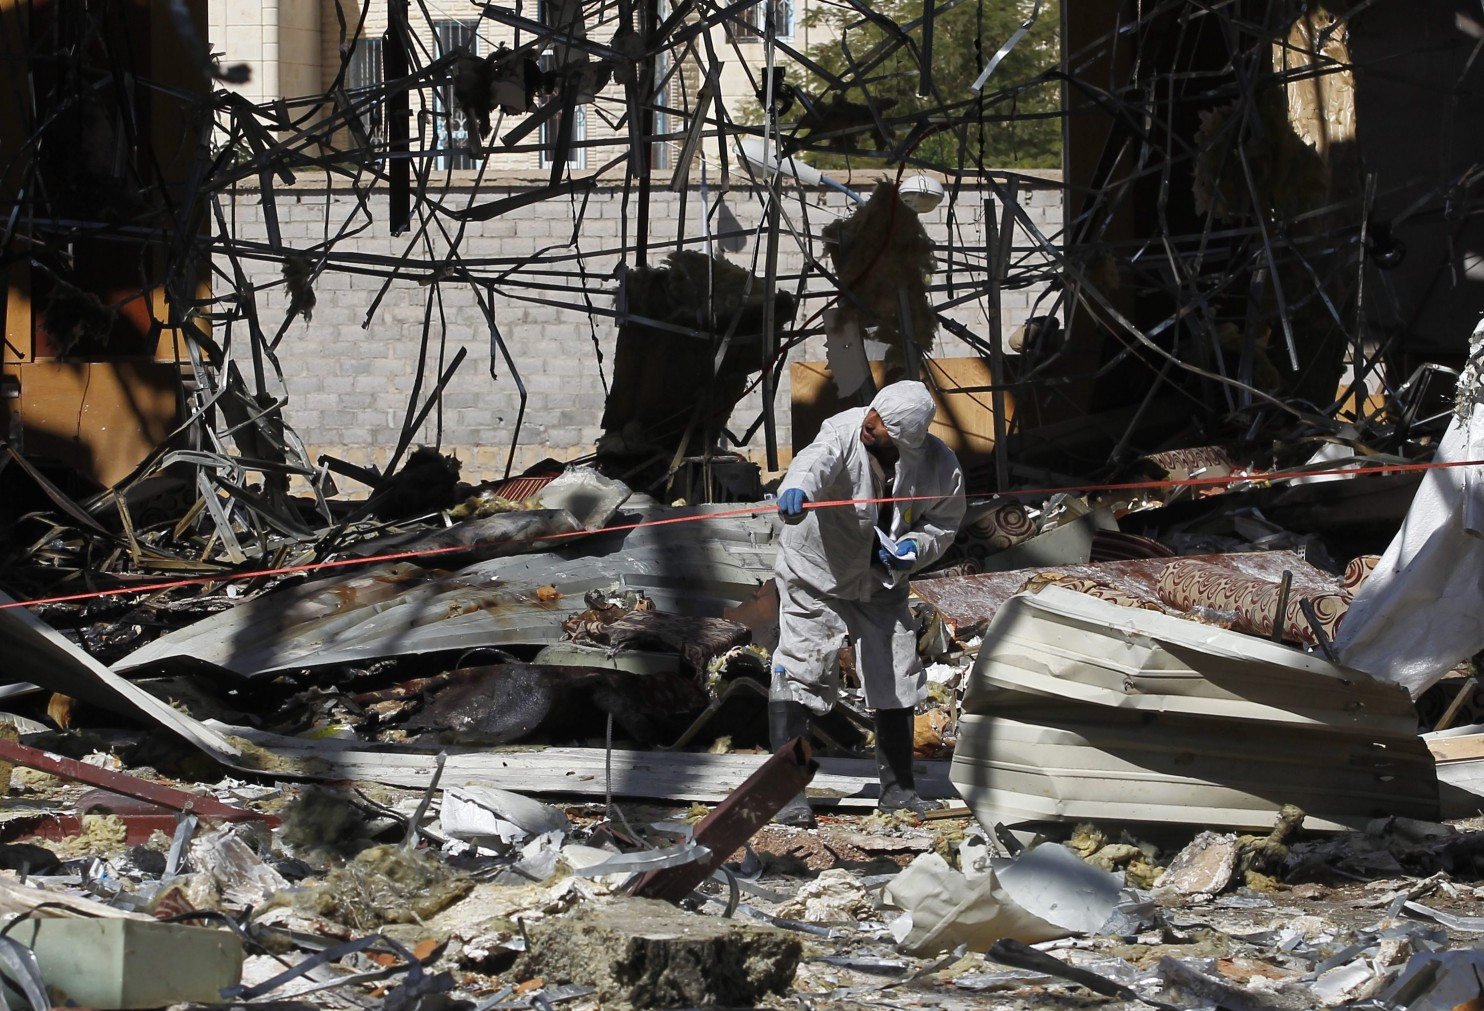 A forensic expert investigates the scene at a funeral hall on Oct. 10, two days after Saudi-led airstrikes hit it in Sanaa, Yemen. (Yahya Arhab/European Pressphoto Agency)